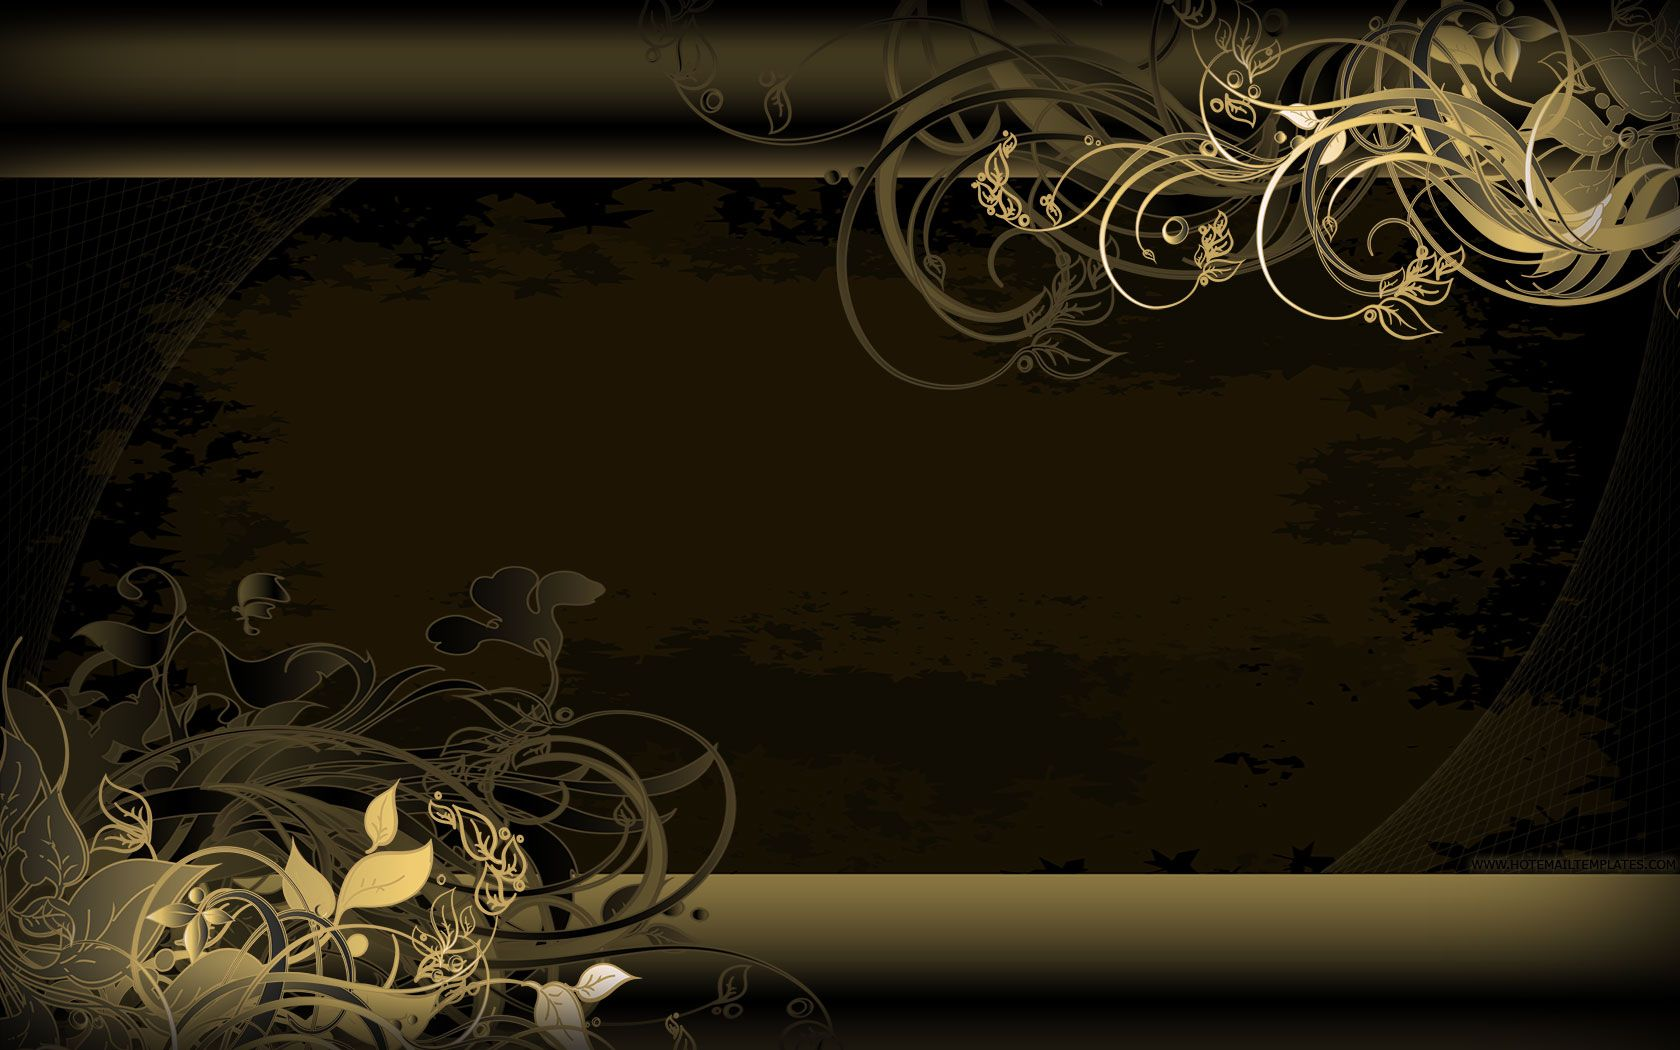 Gold Borders Anazhthsh Google Gold Abstract Wallpaper Gold Wallpaper Hd Aesthetic Desktop Wallpaper